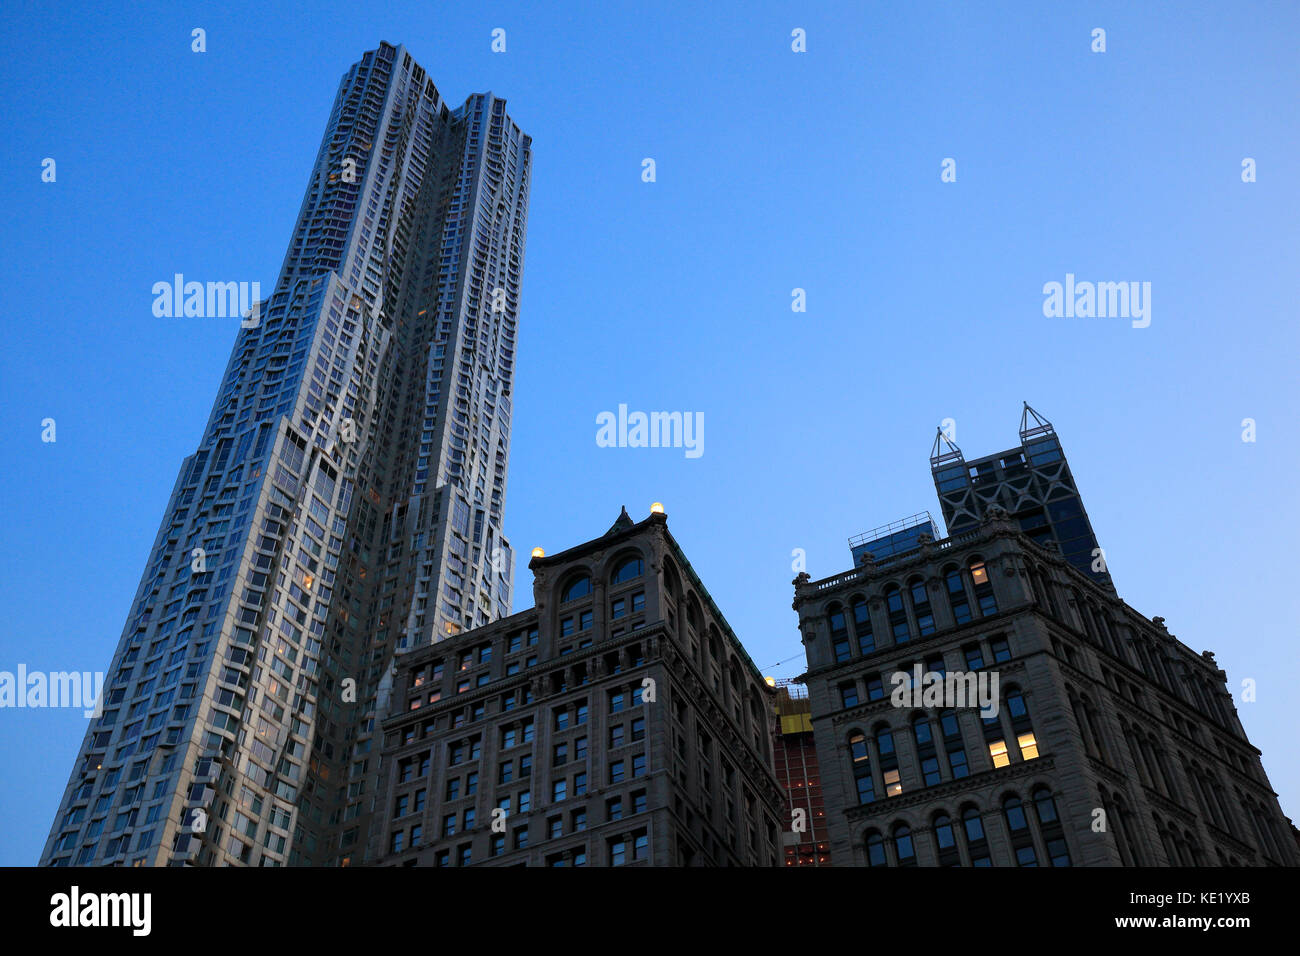 New York by Gehry building in Manhattan, NYC - Stock Image